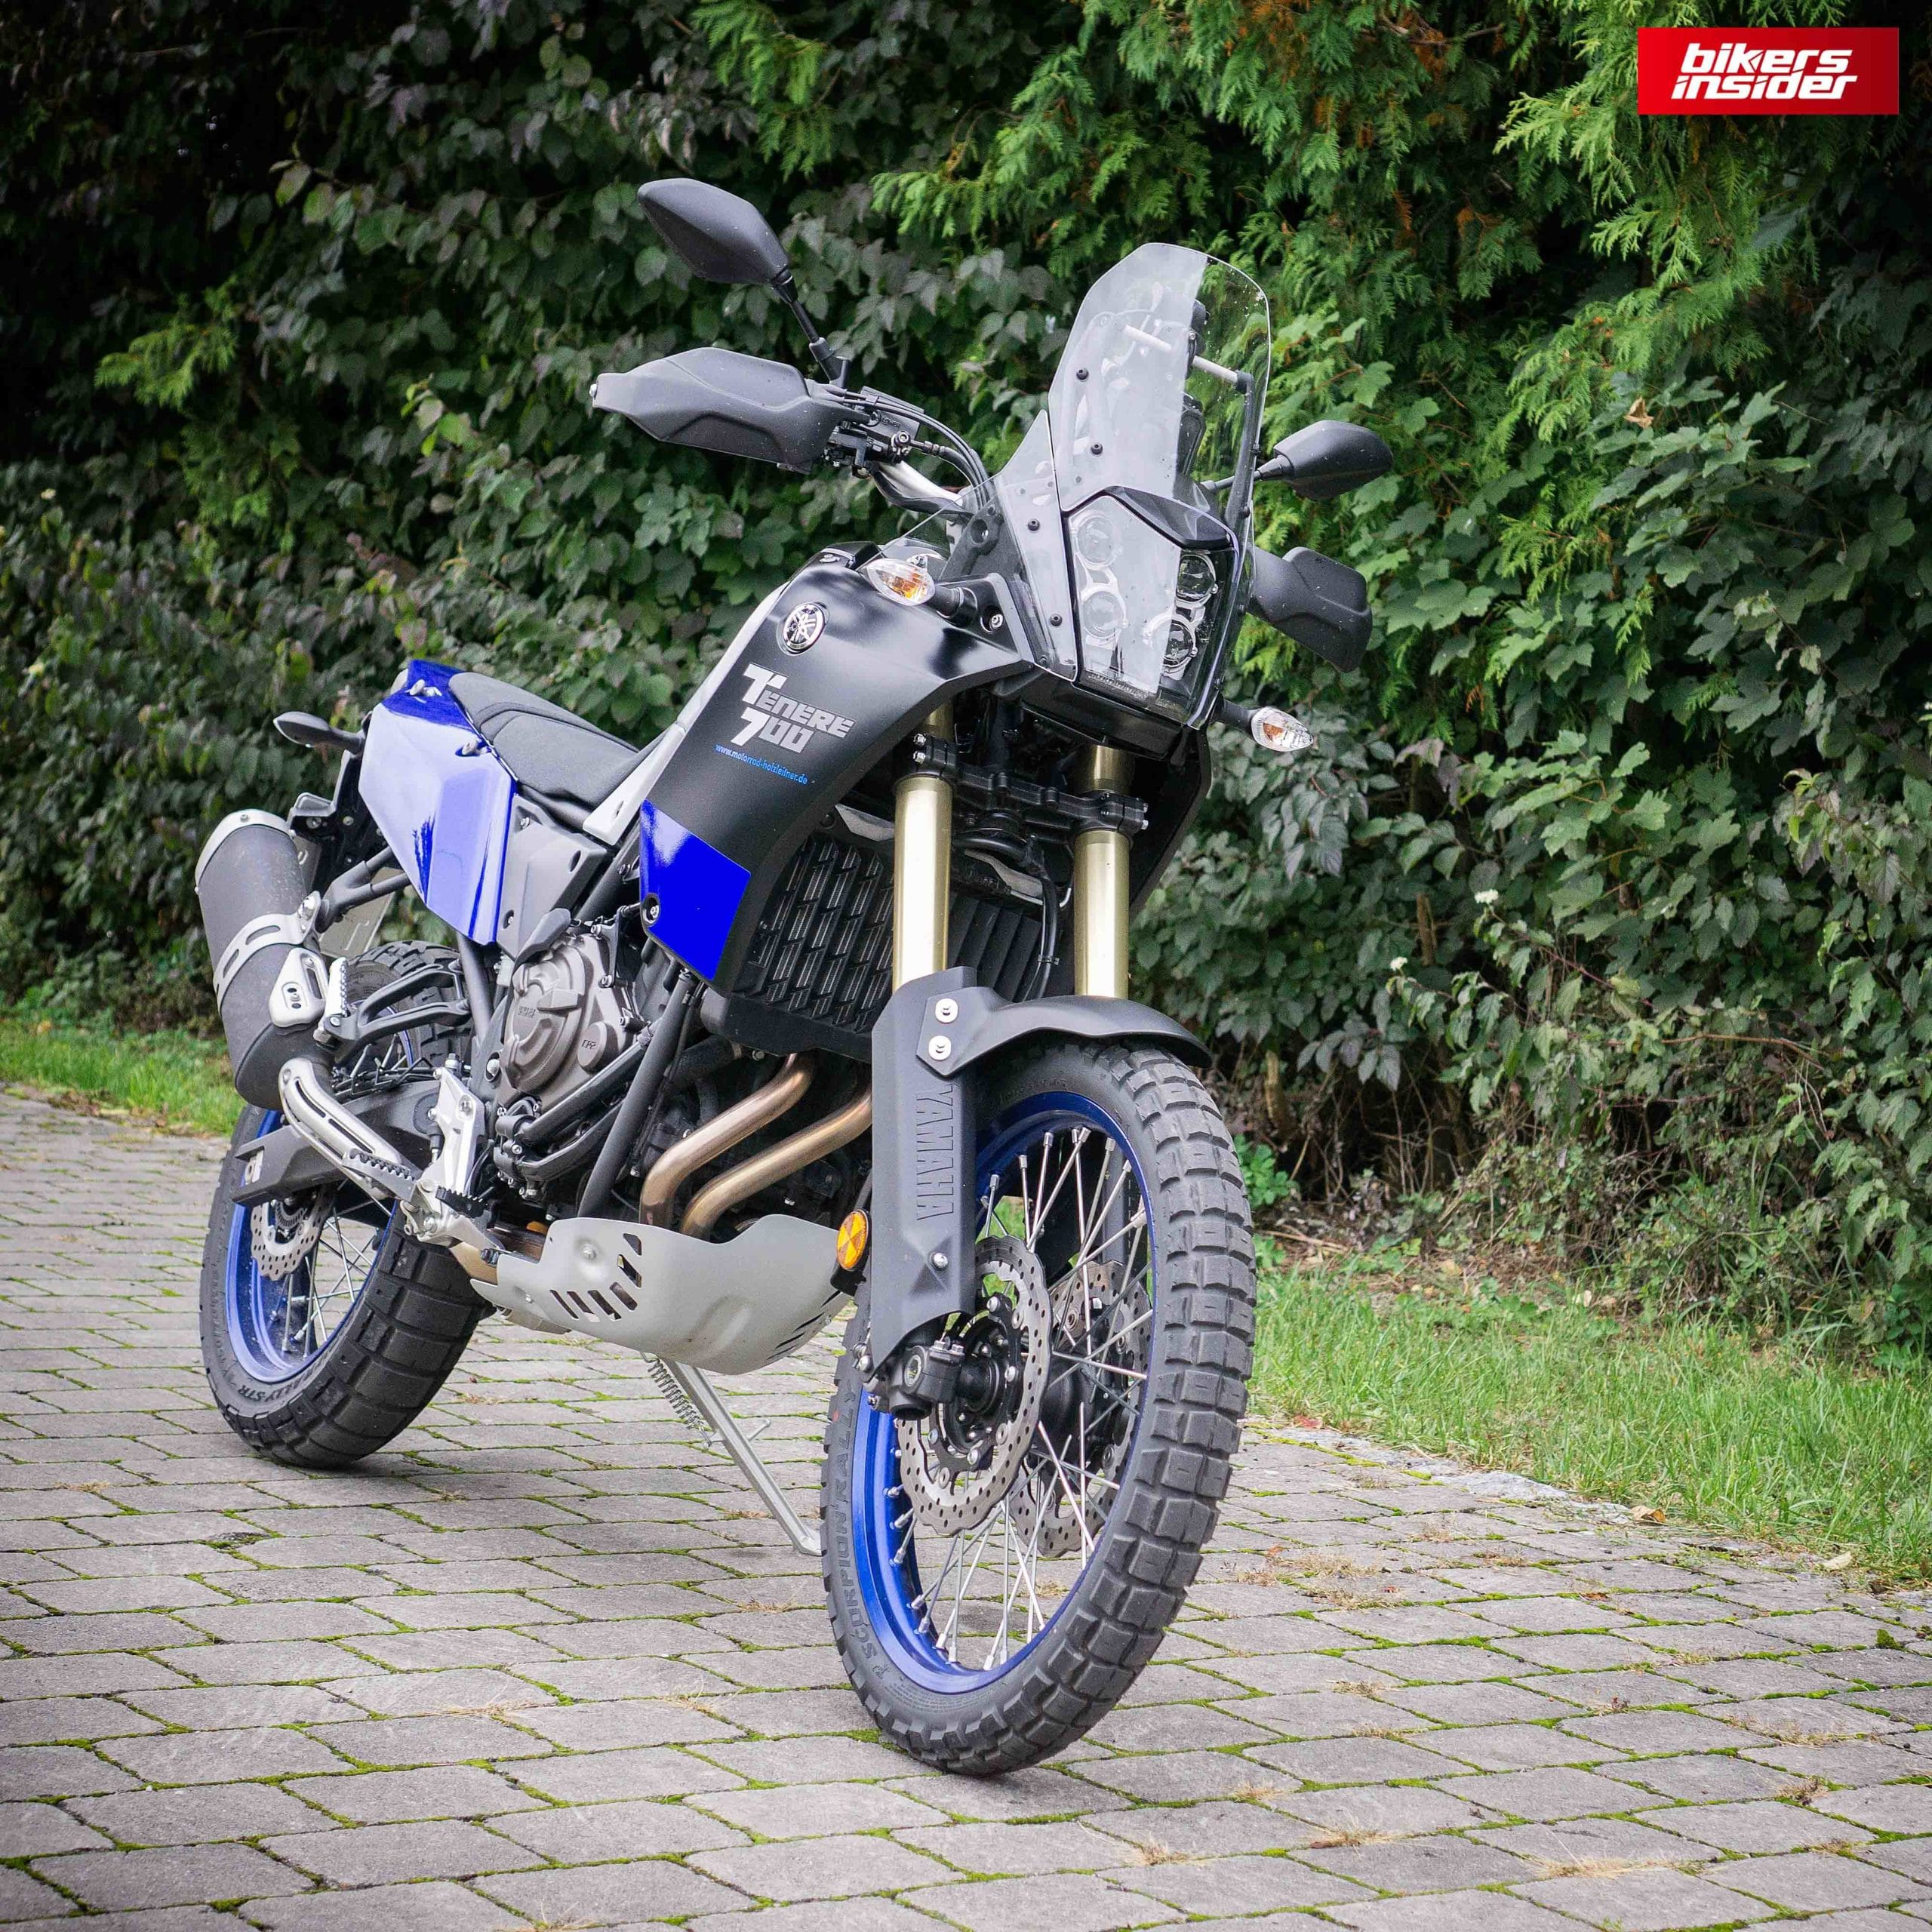 Yamaha Tenere 300 Could Come In The Future!